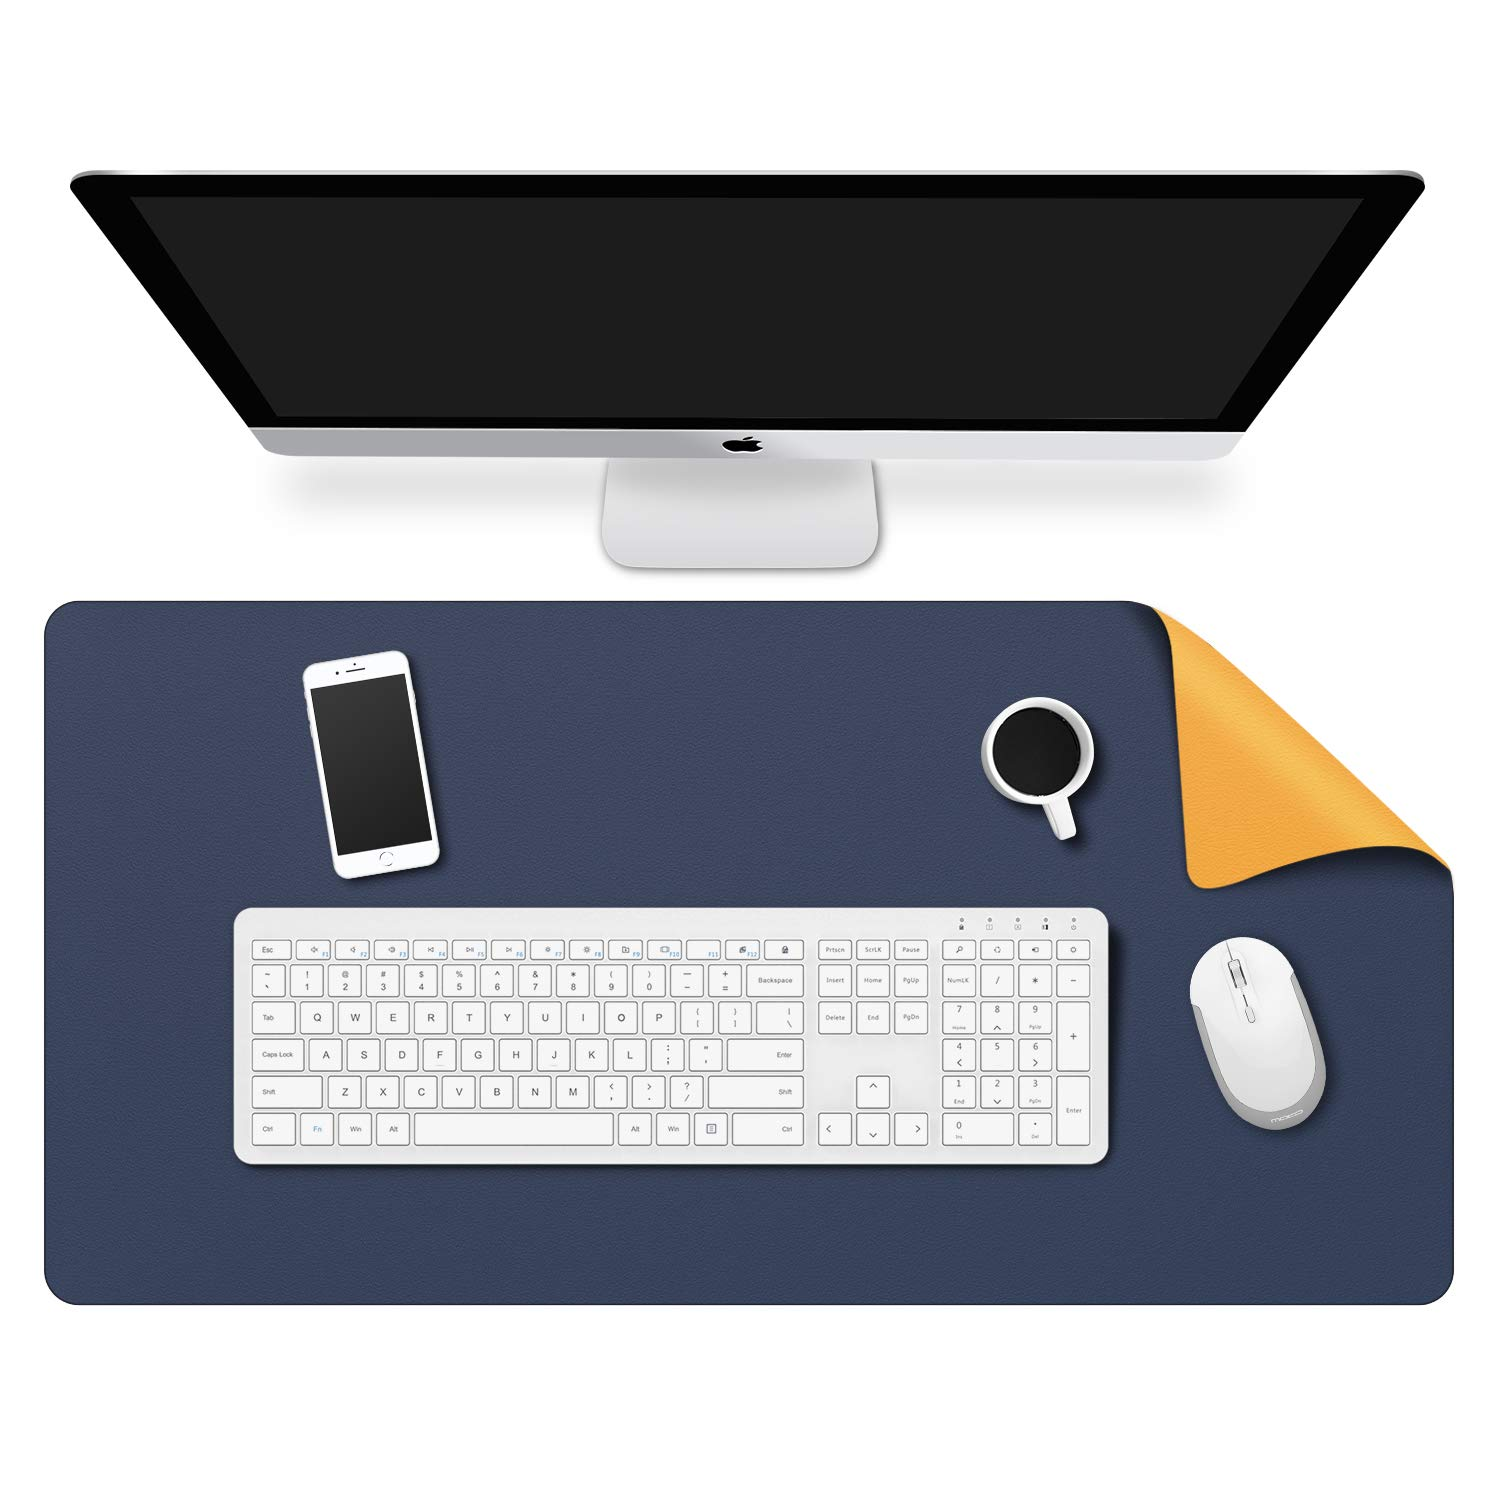 MoKo Computer Desk Mat - PU Large Extended Gaming Mouse Pad, Non-Slip Keyboard Mouse Mat, Waterproof Office Writing Desk Pad Protector, 31.5 x 15.7 x 0.08 inch - Double Side Royal Blue/Yellow